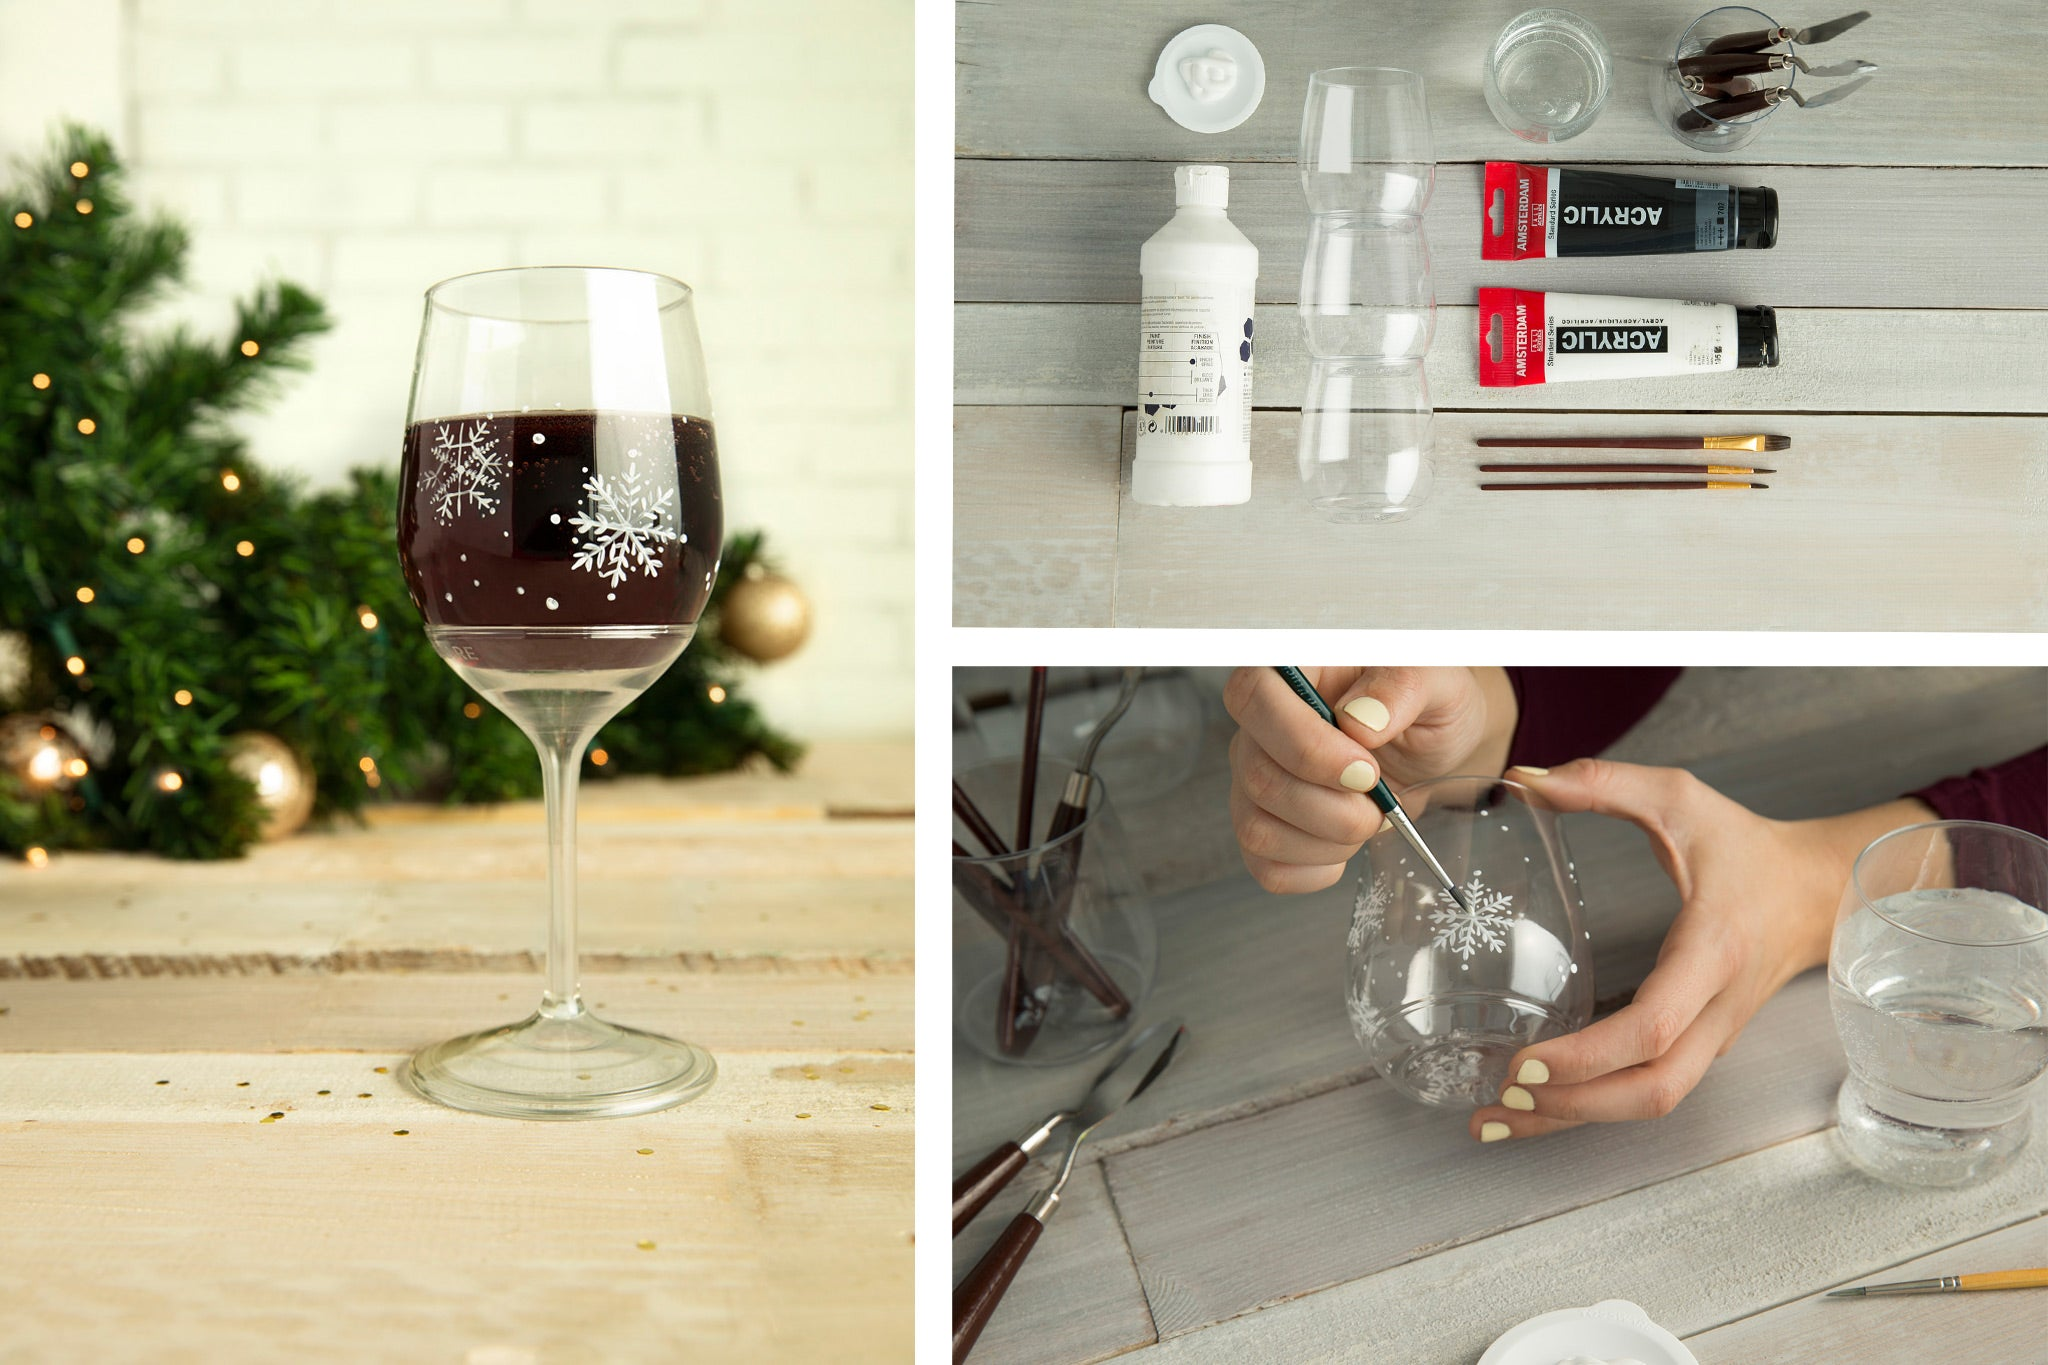 How to Paint Wine Glasses for Christmas